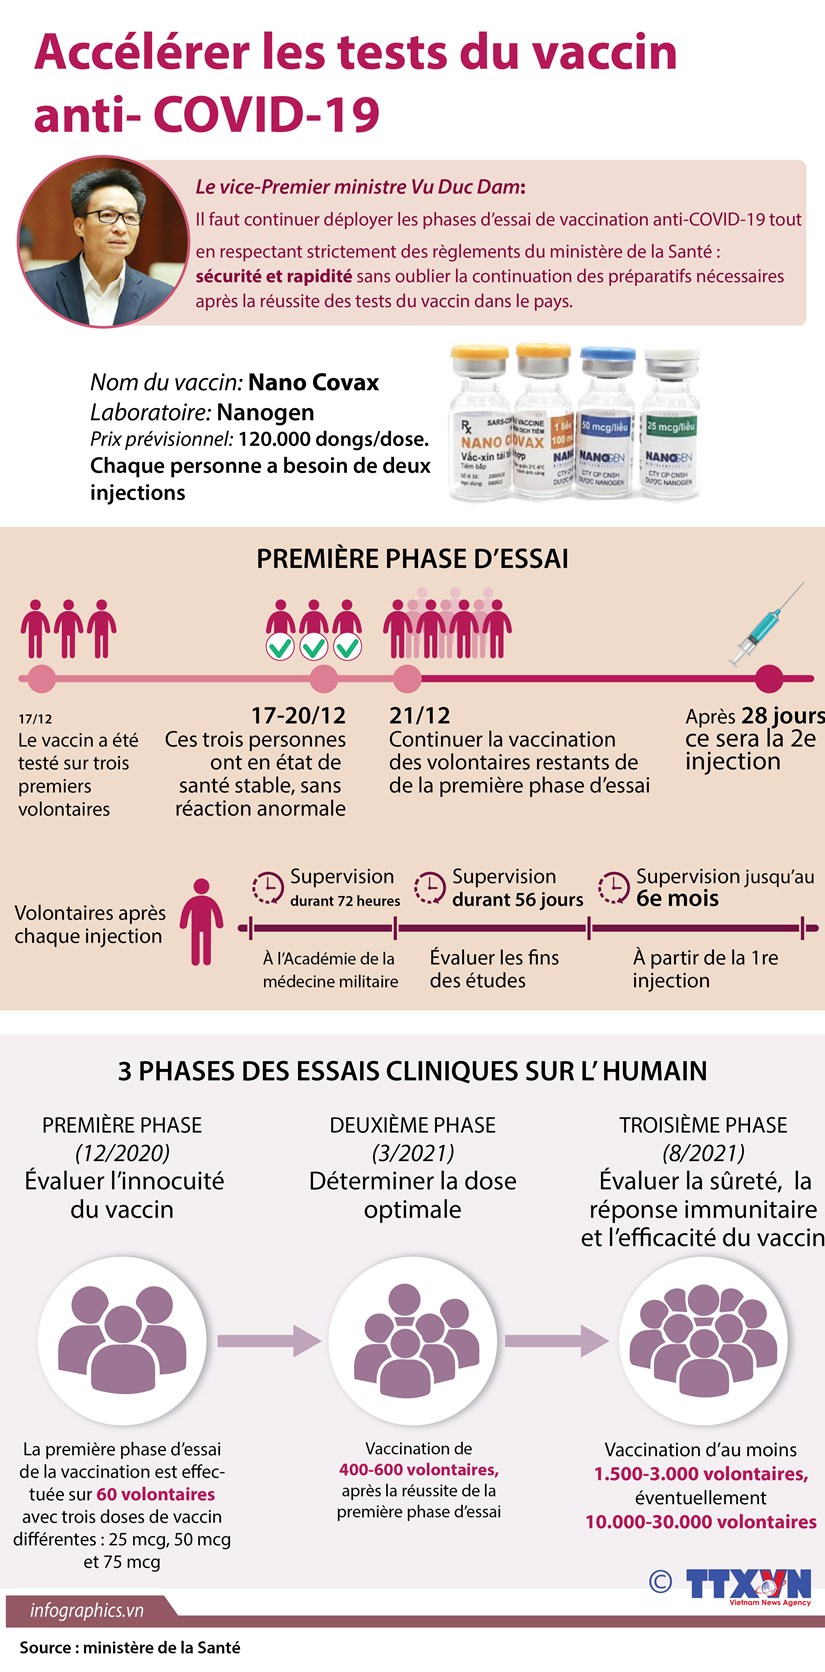 Accelerer les tests du vaccin anti- COVID-19 hinh anh 1